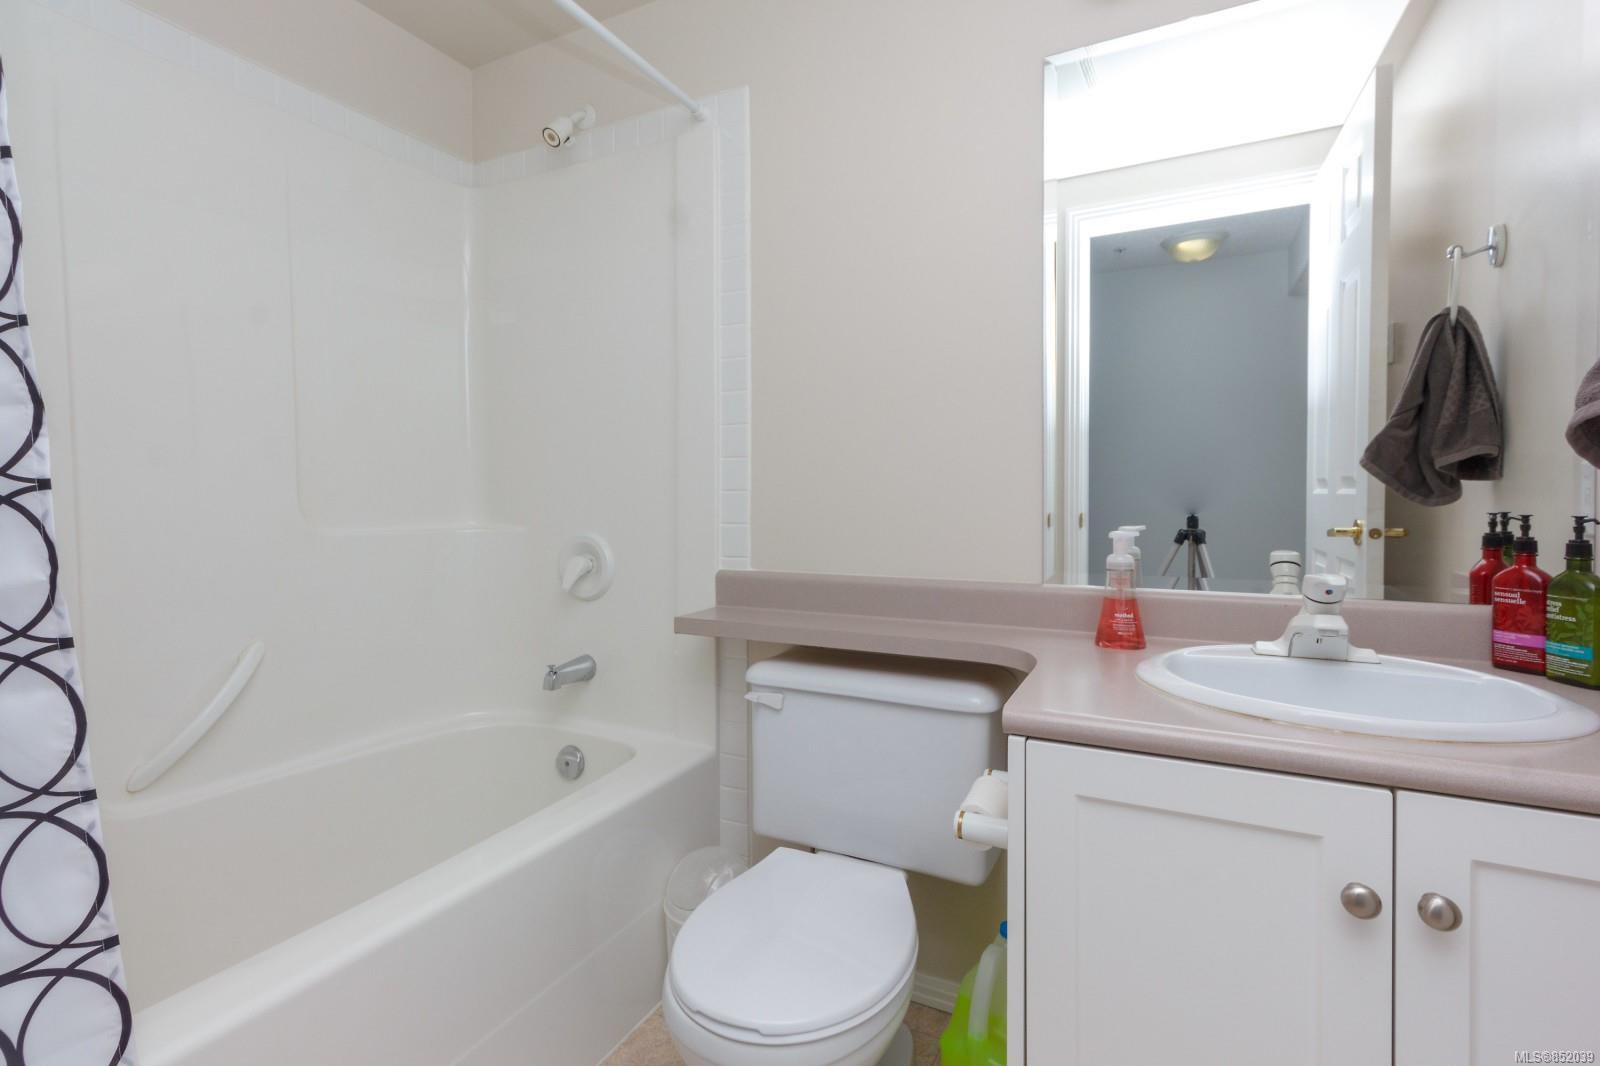 Photo 18: Photos: 109 1240 Verdier Ave in : CS Brentwood Bay Condo for sale (Central Saanich)  : MLS®# 852039